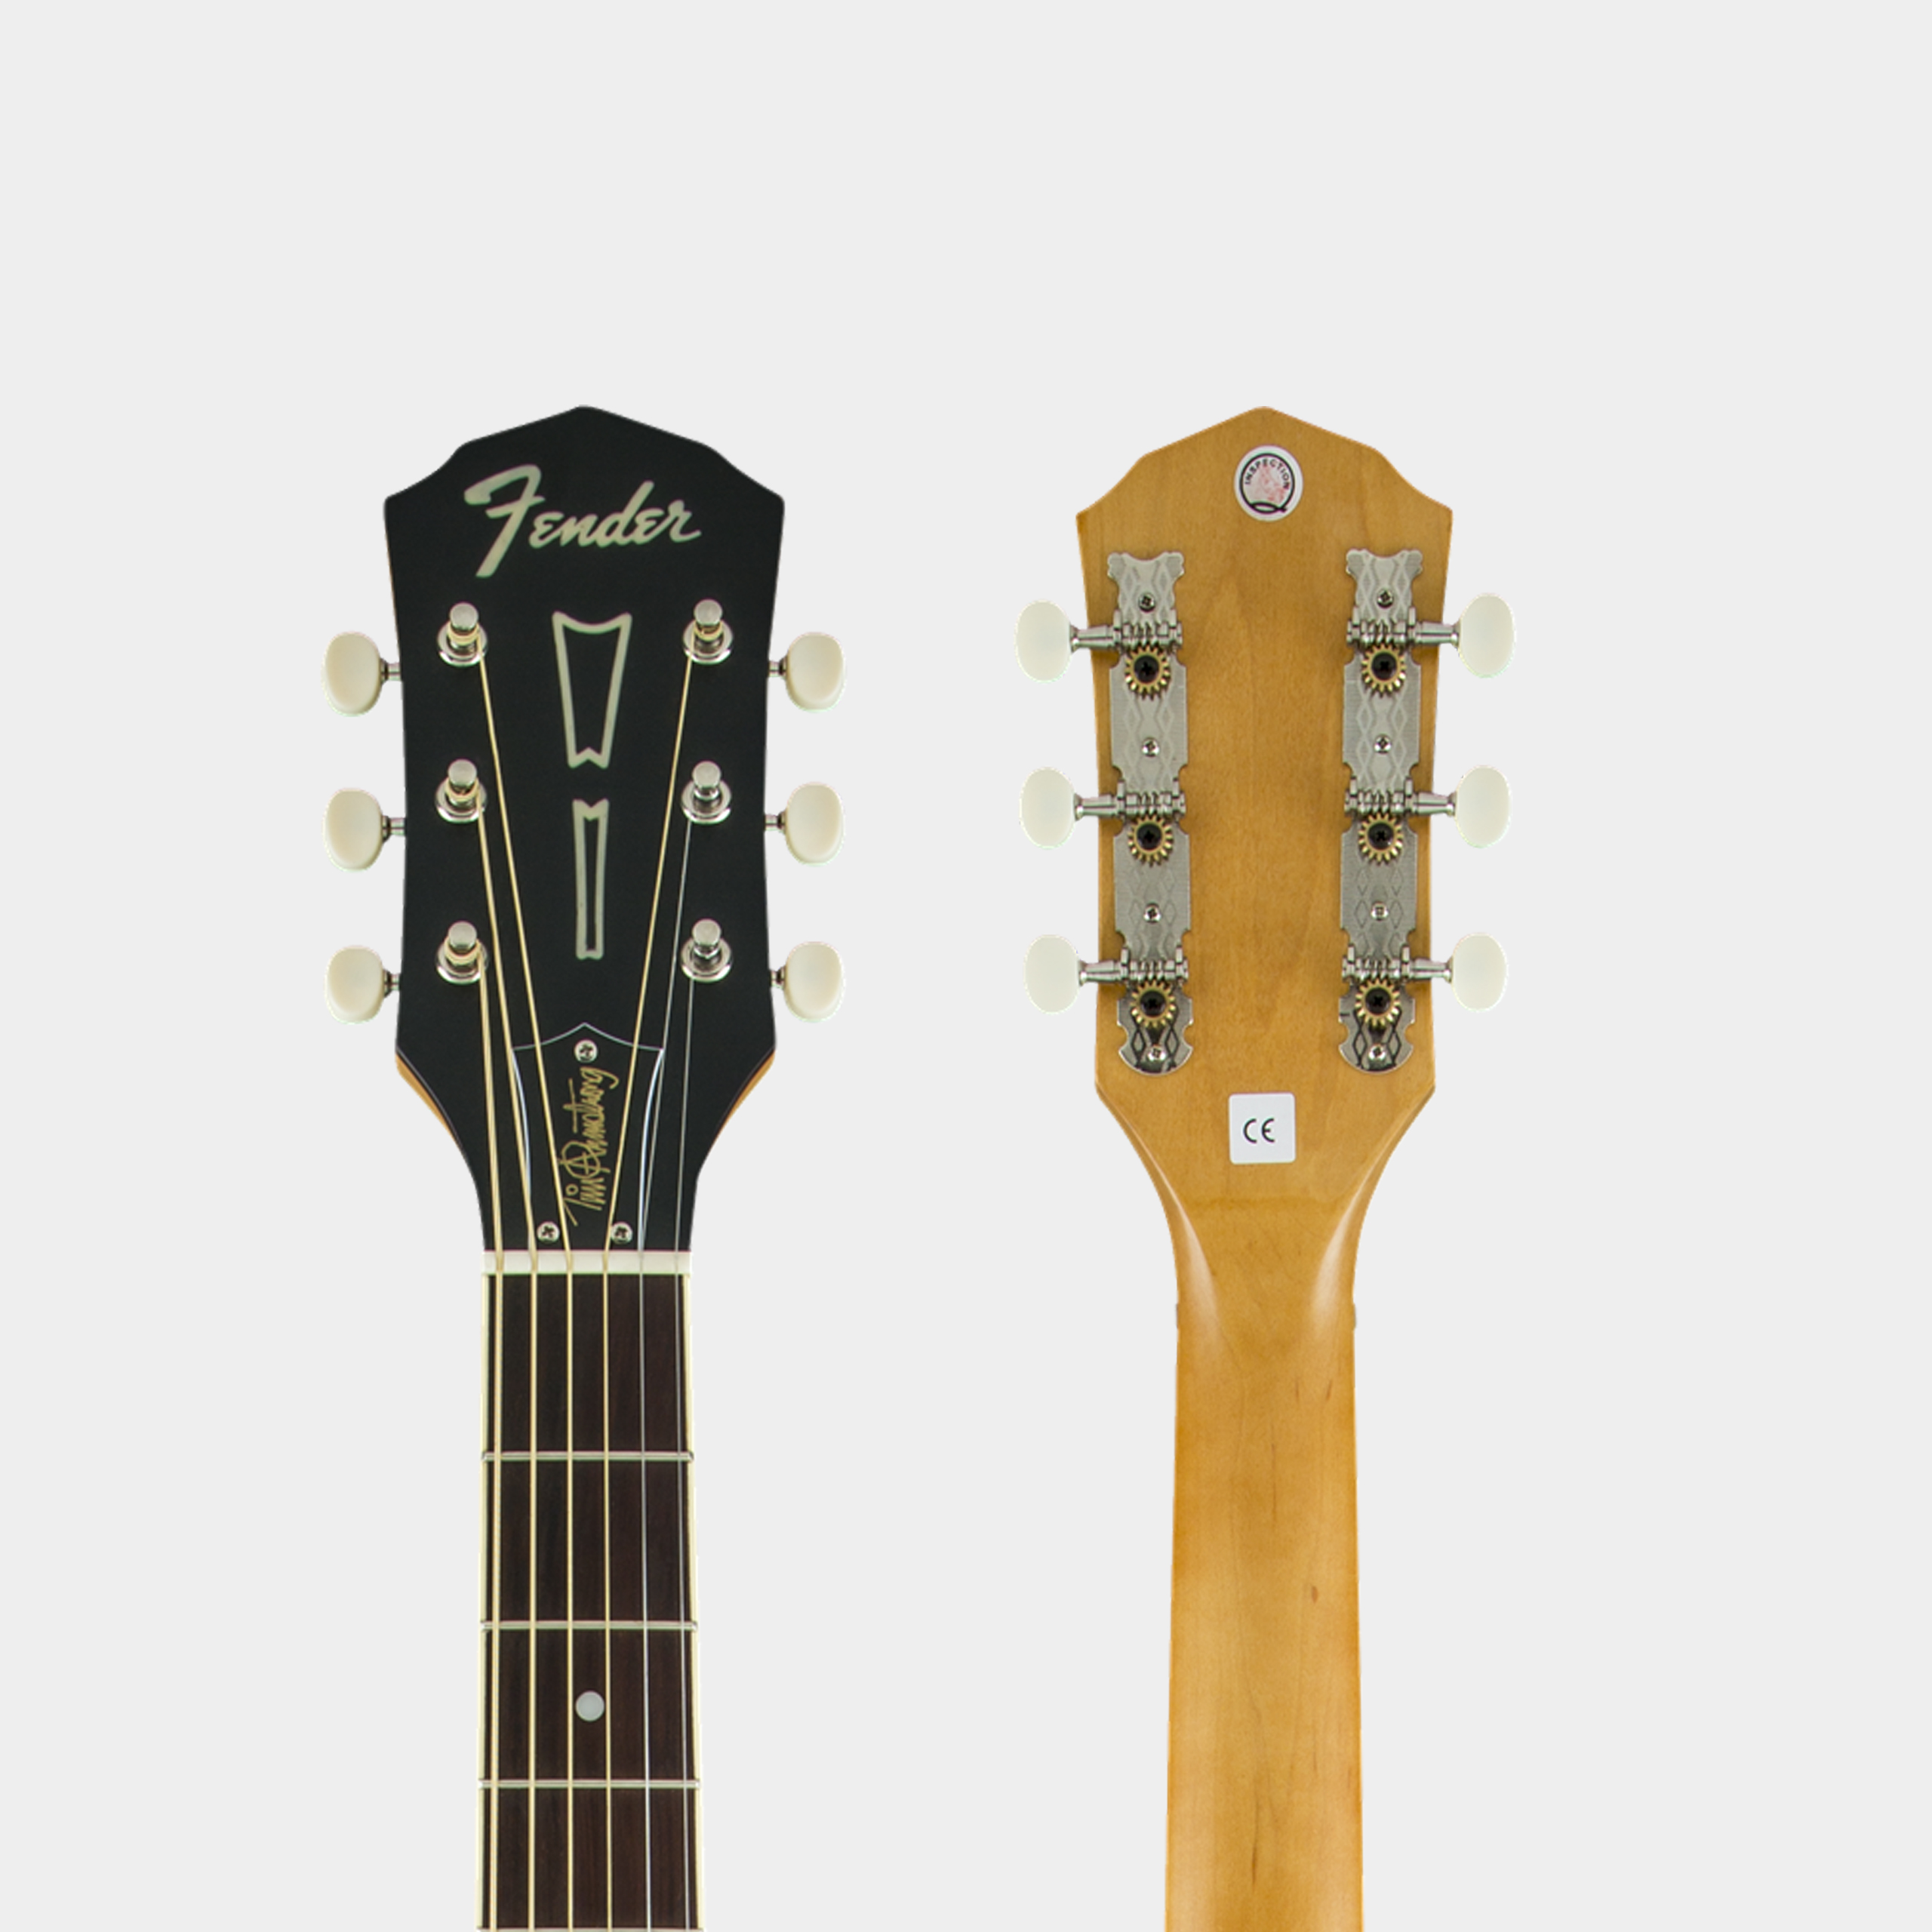 FENDER FSR Tim Armstrong Deluxe Satin Black Headstock Detail